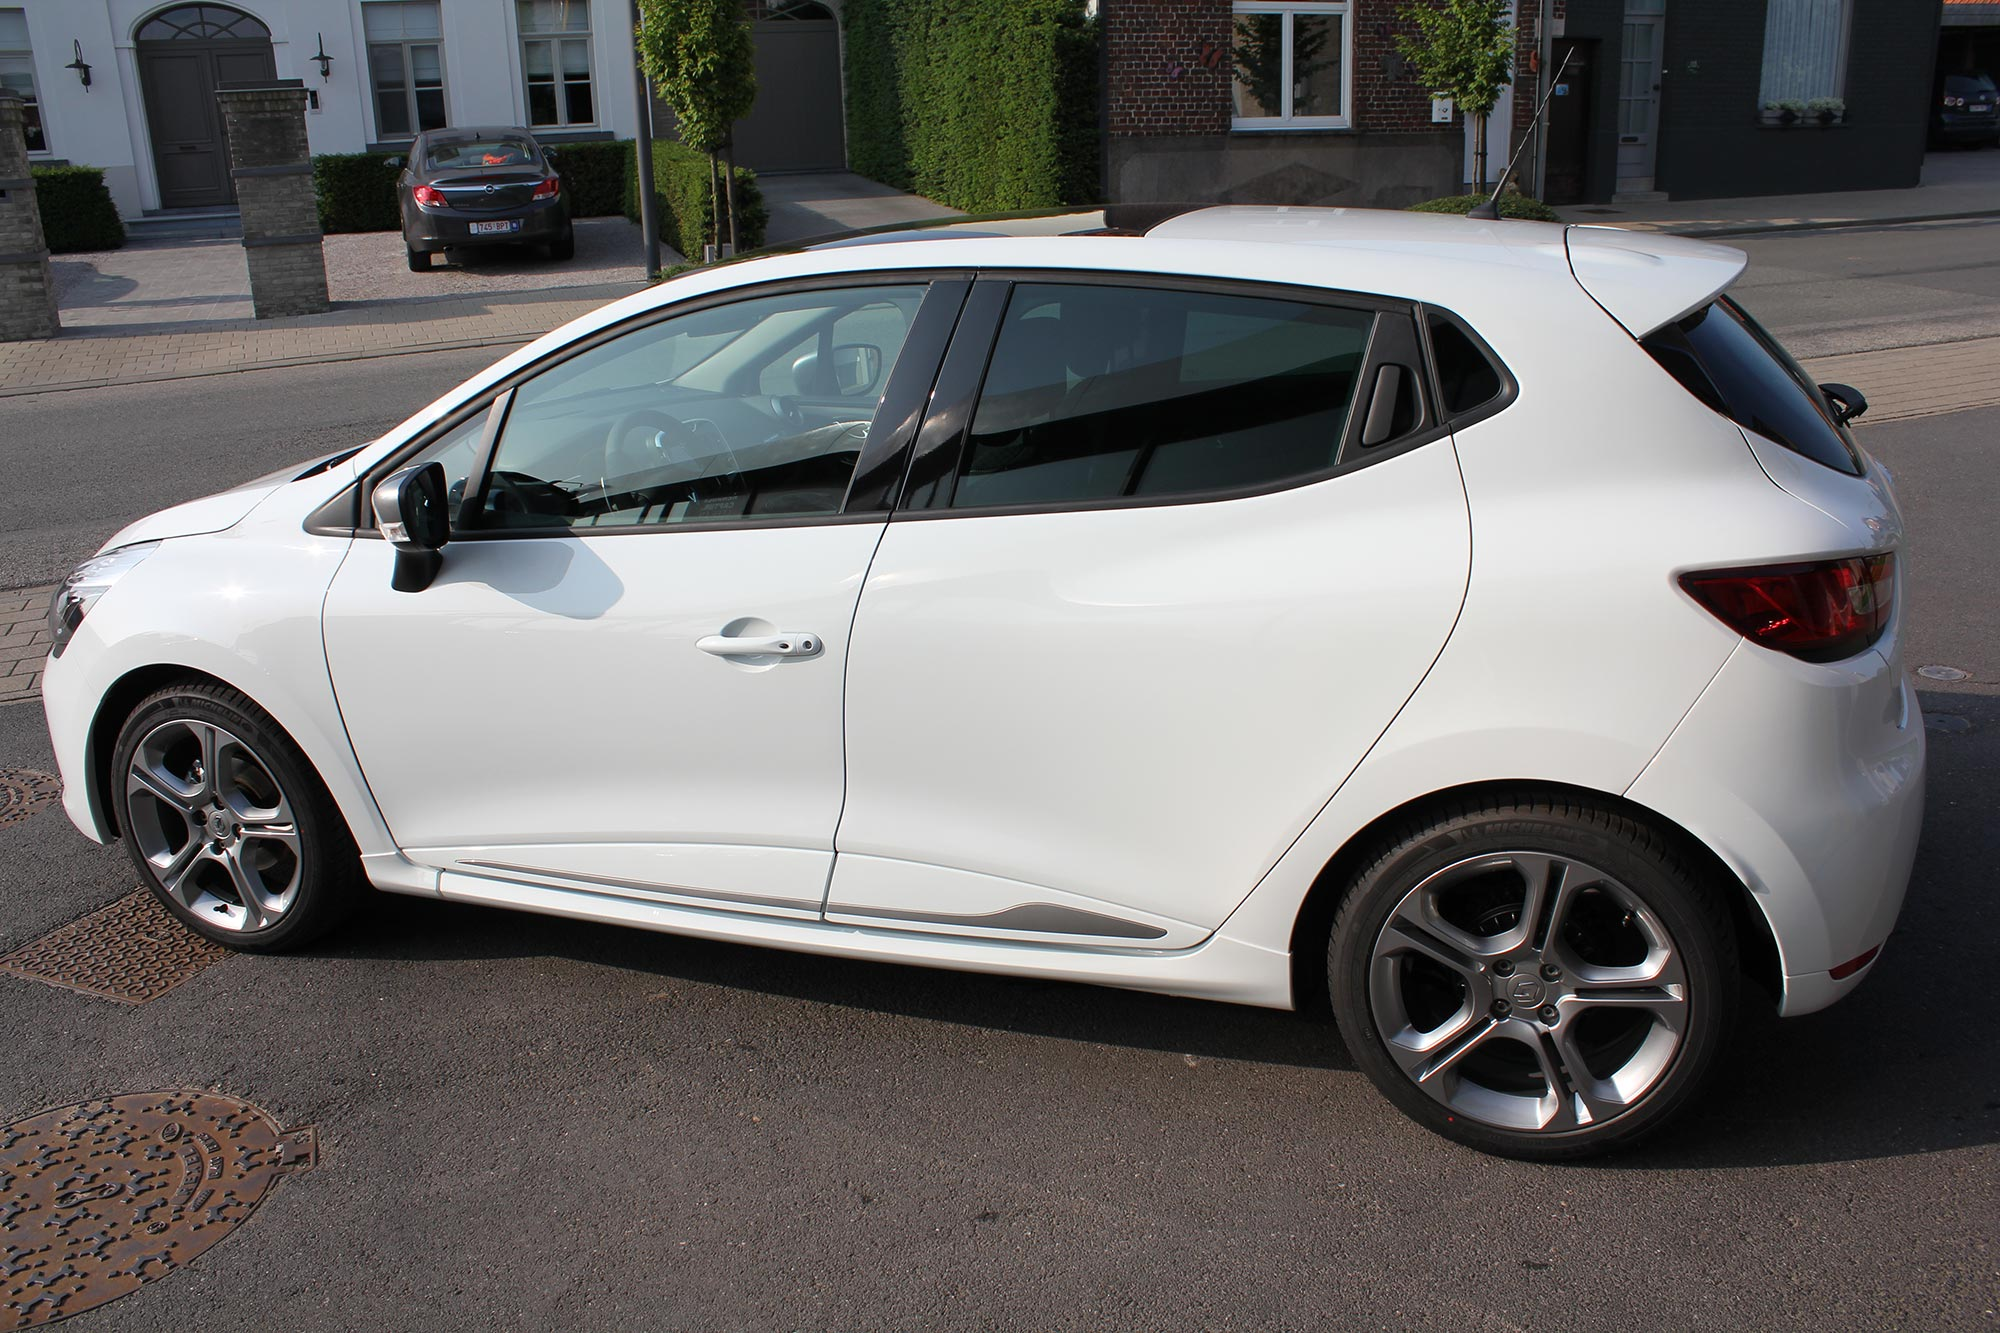 Clio gt 1,2 TCE 120 pk - goethals - wingene